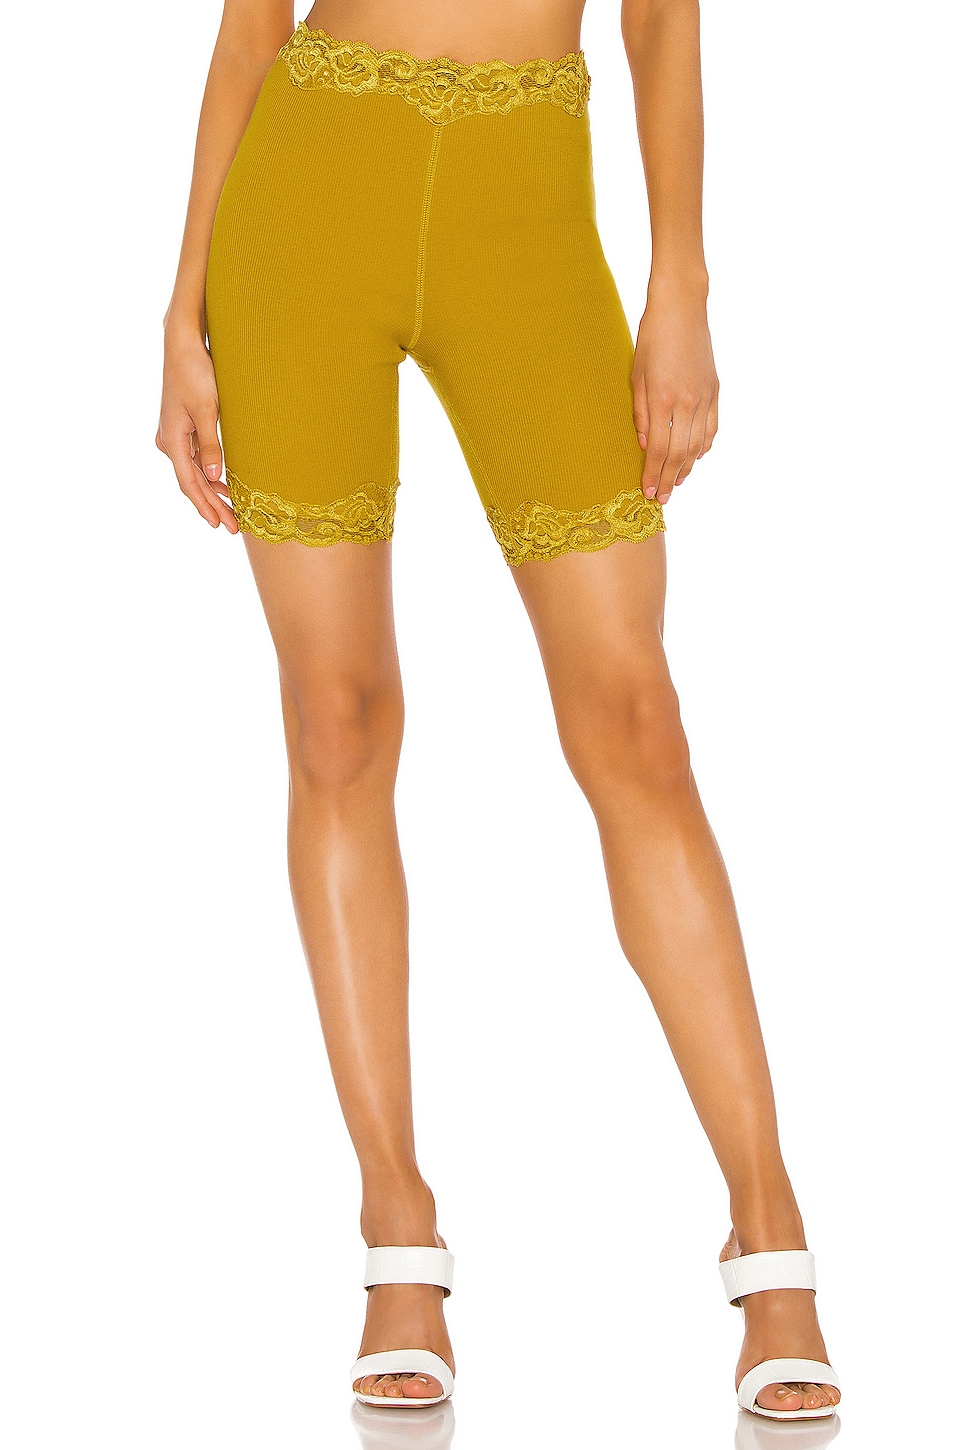 Free People Harlow Bike Short in Gold